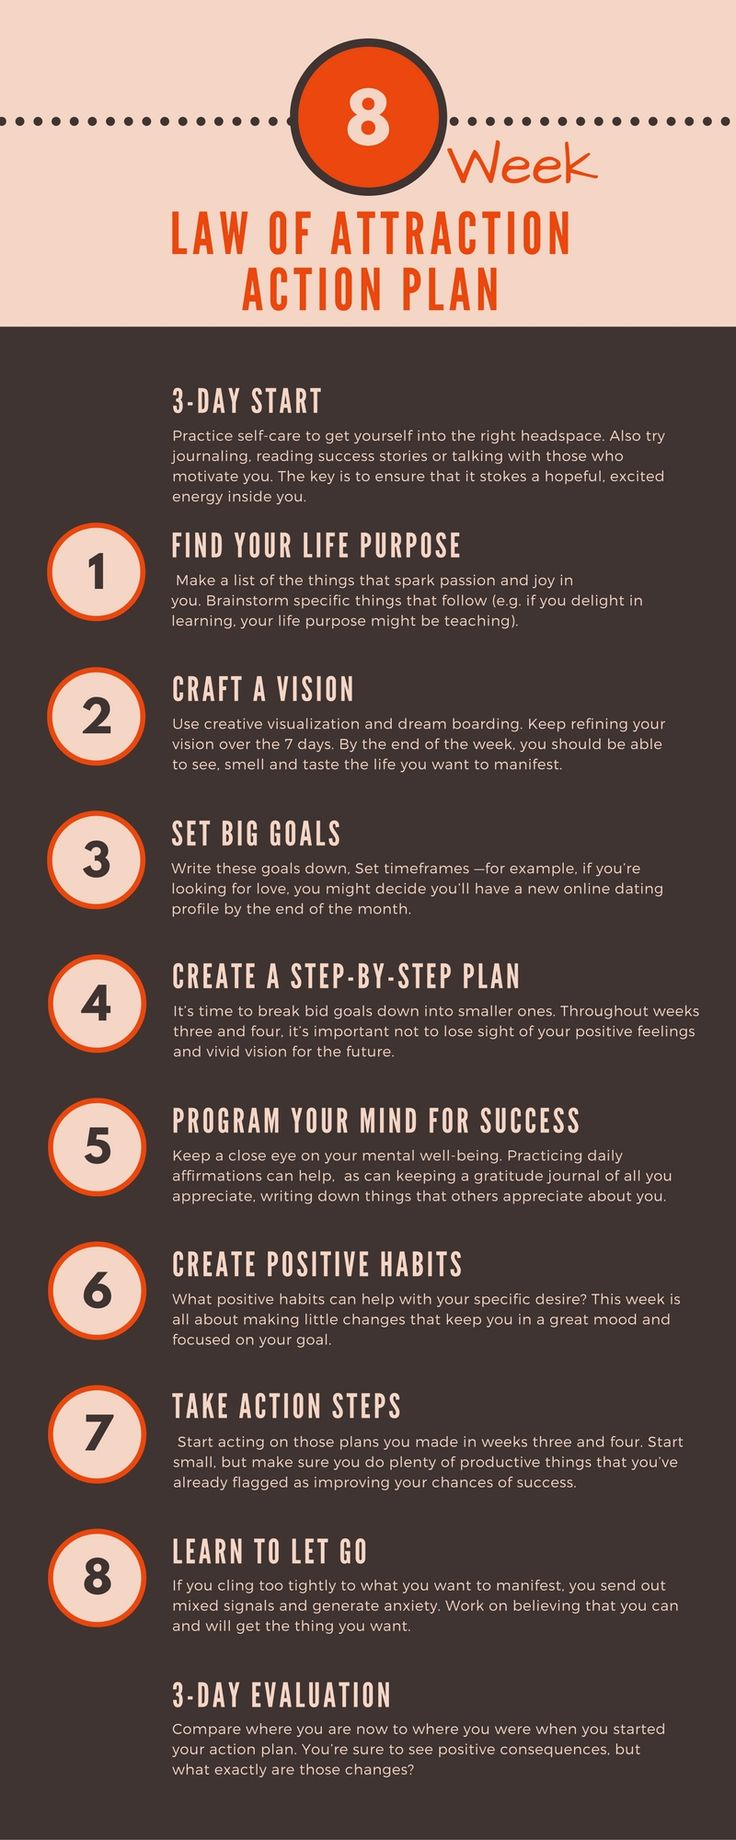 benefits of writing down your goals list The importance of setting goals goal-setting shares overlapping benefits across have him think of different ways he can achieve this goal and write down the.